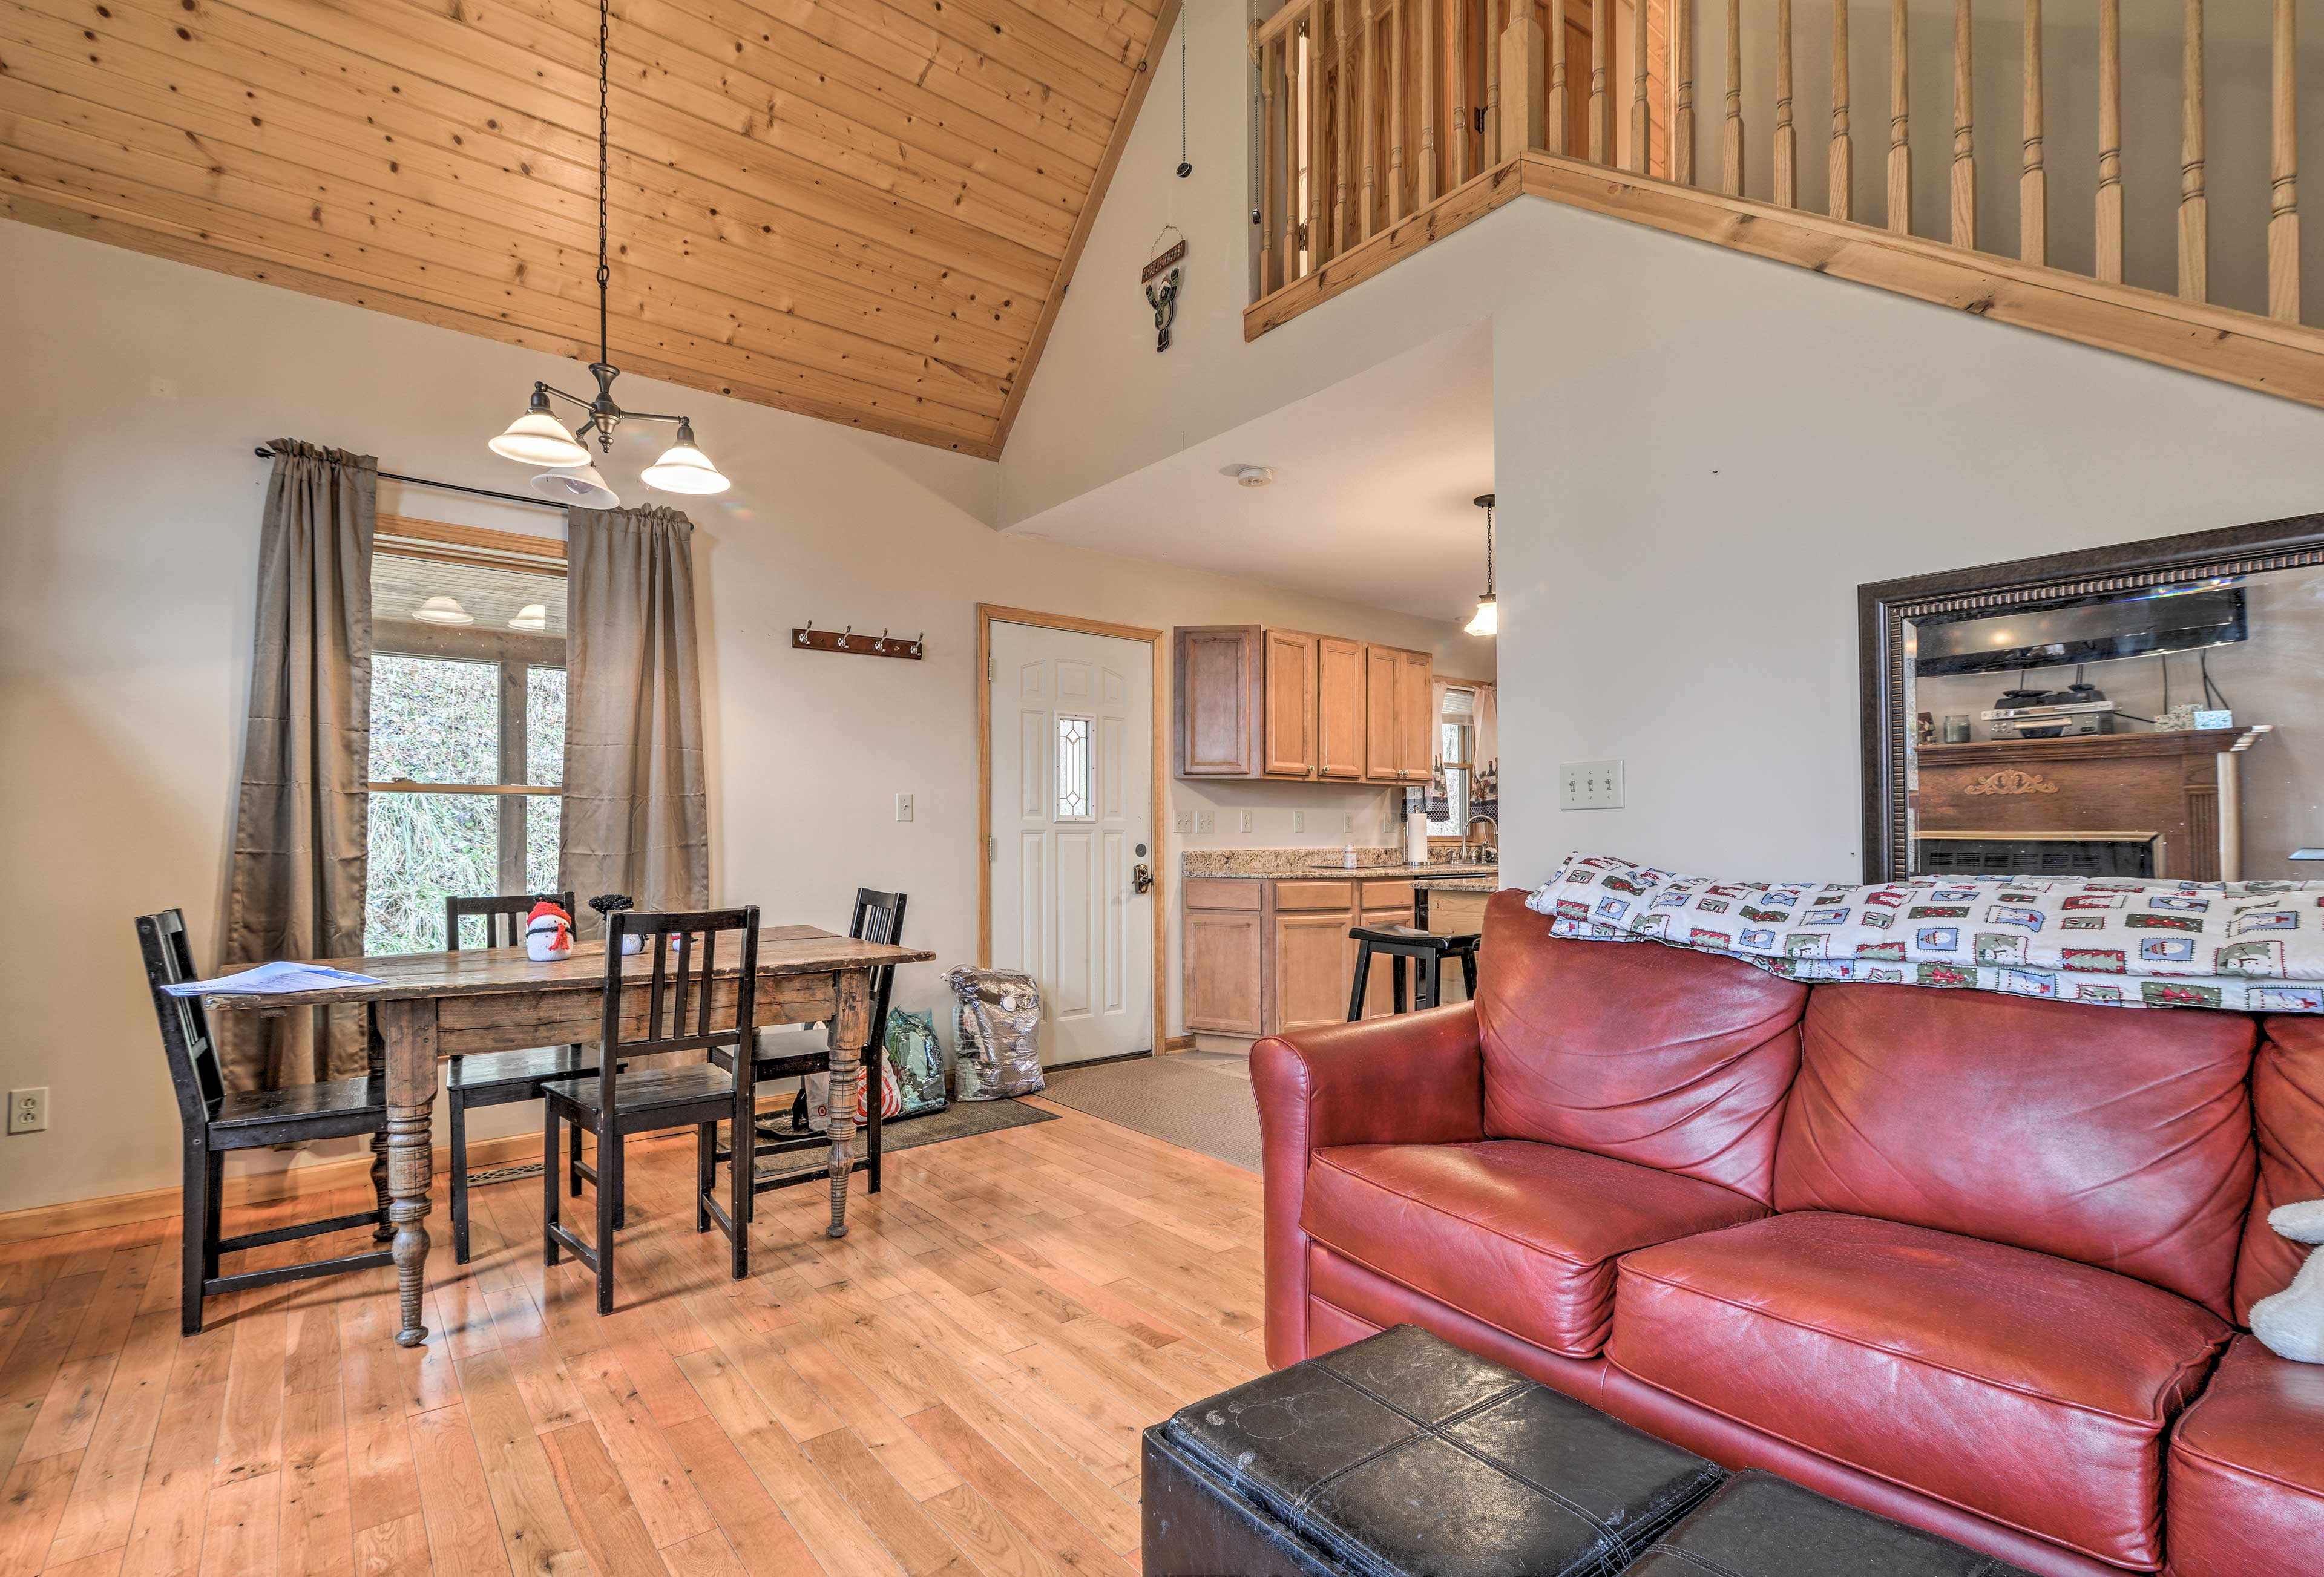 An open floor plan and high ceilings create an open atmosphere inside the cabin.